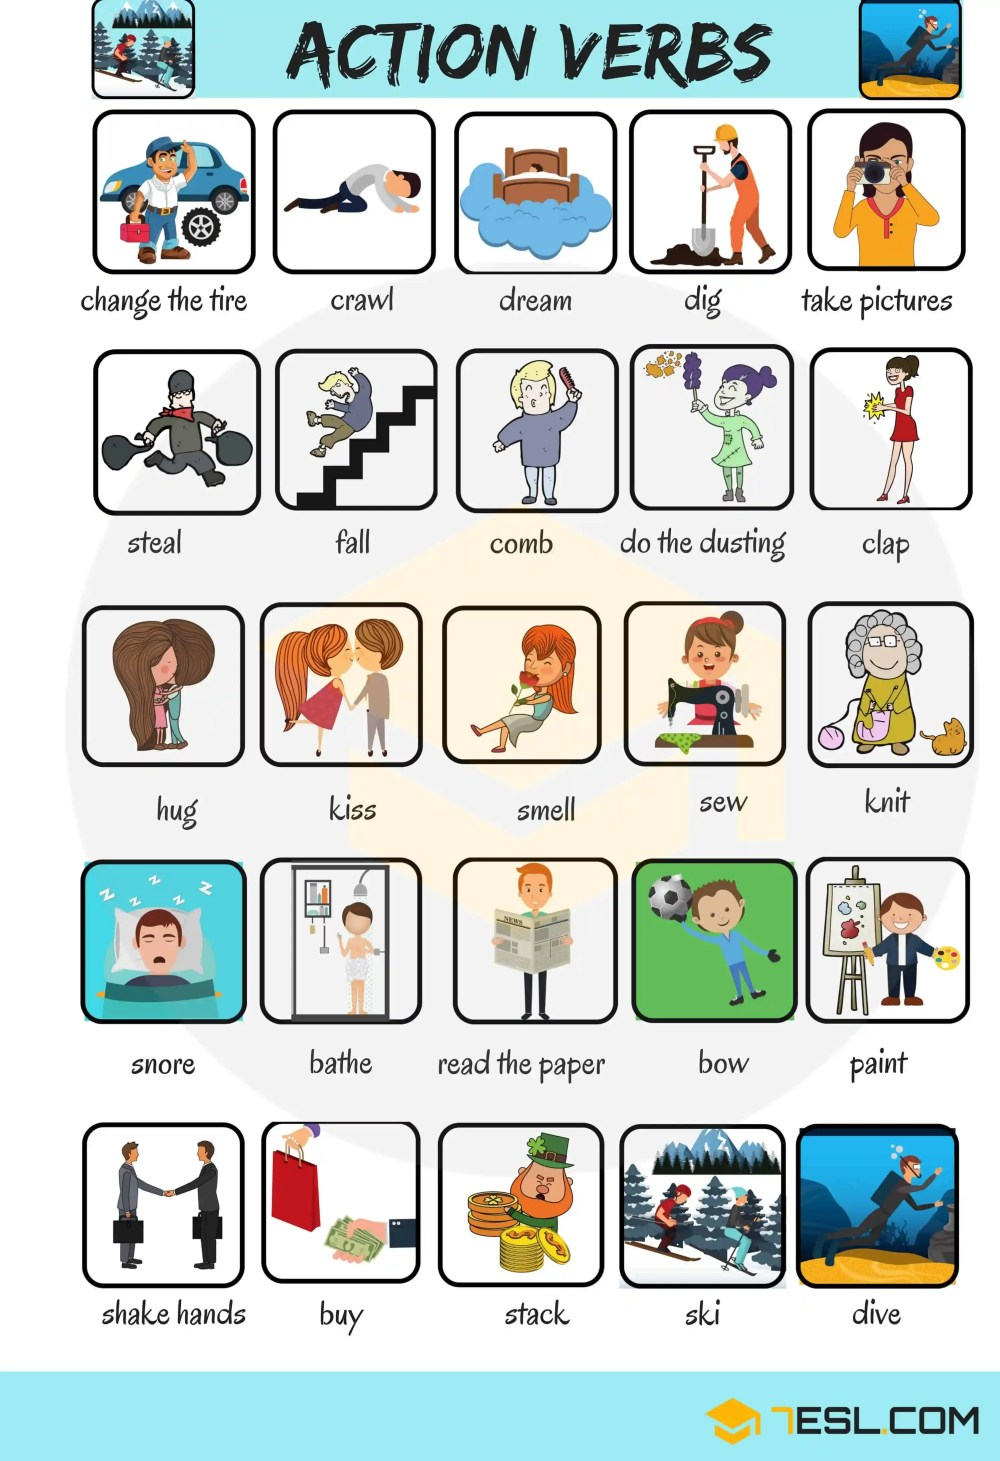 medium resolution of Action Verbs: List of 50 Common Action Verbs with Pictures • 7ESL